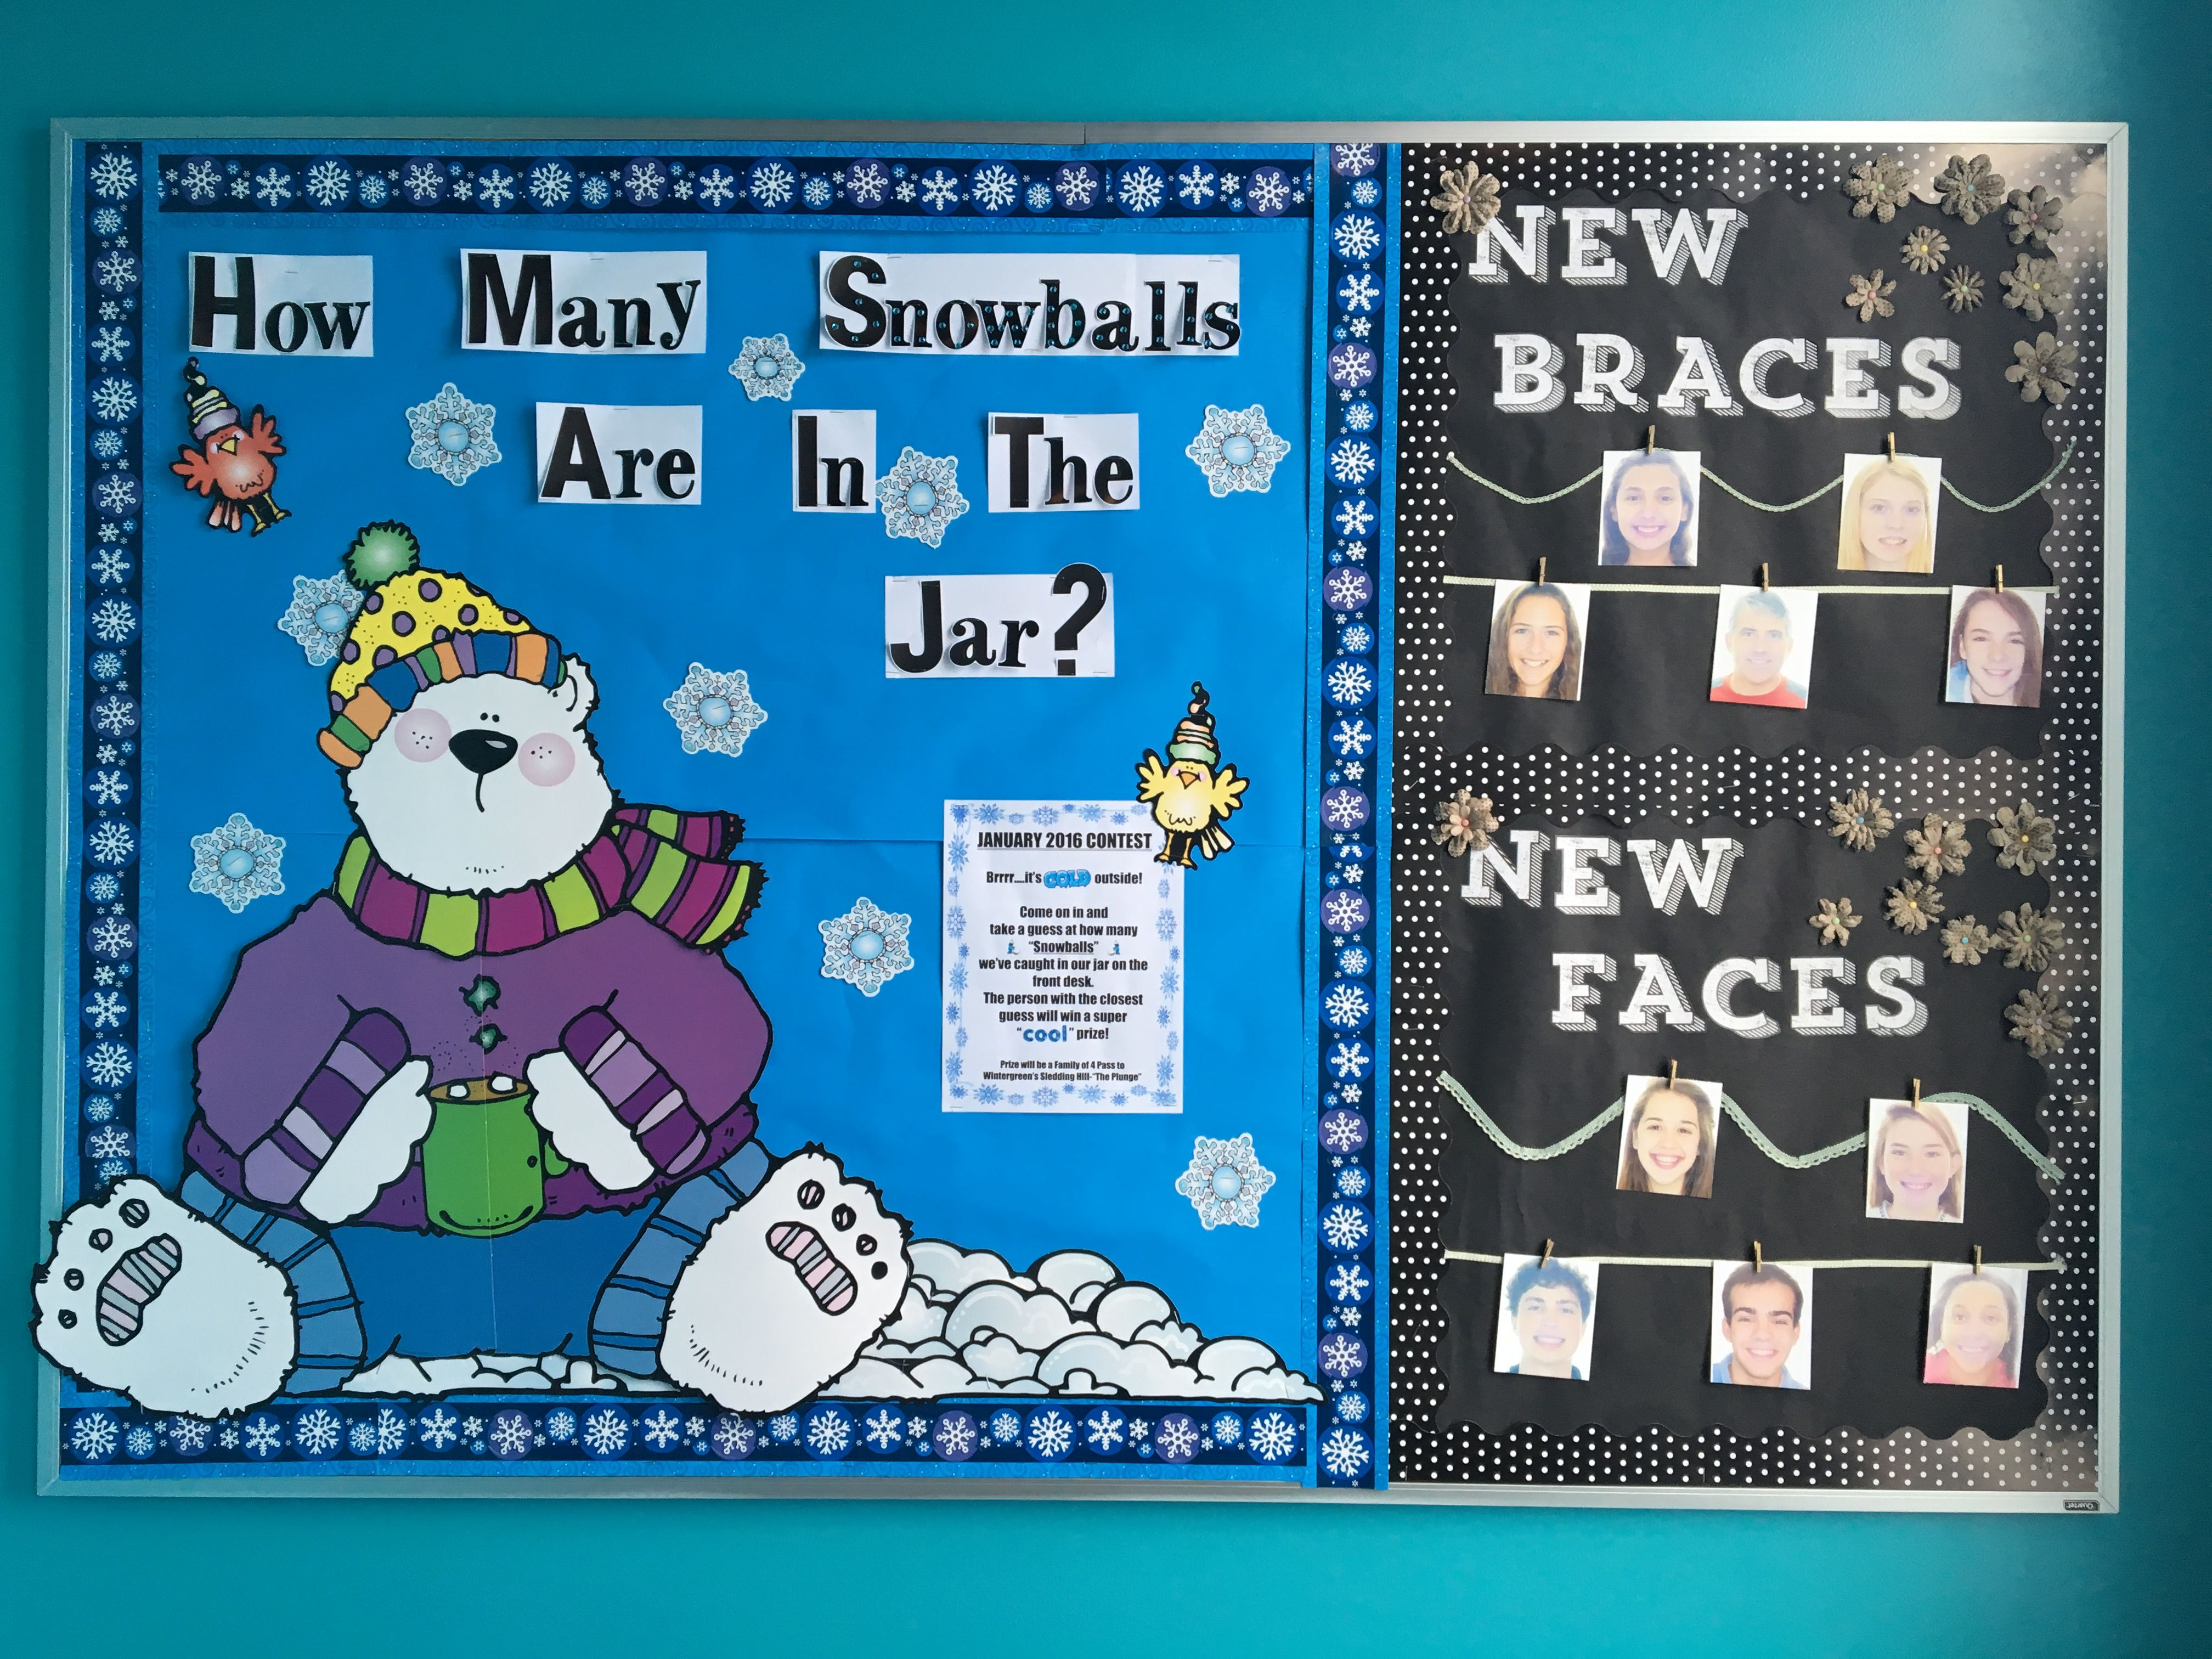 Orthodontic Bulletin Board Contests New Braces New Faces Richmond Orthodontics Orthodontics Pediatric Dentistry Orthodontic Practice